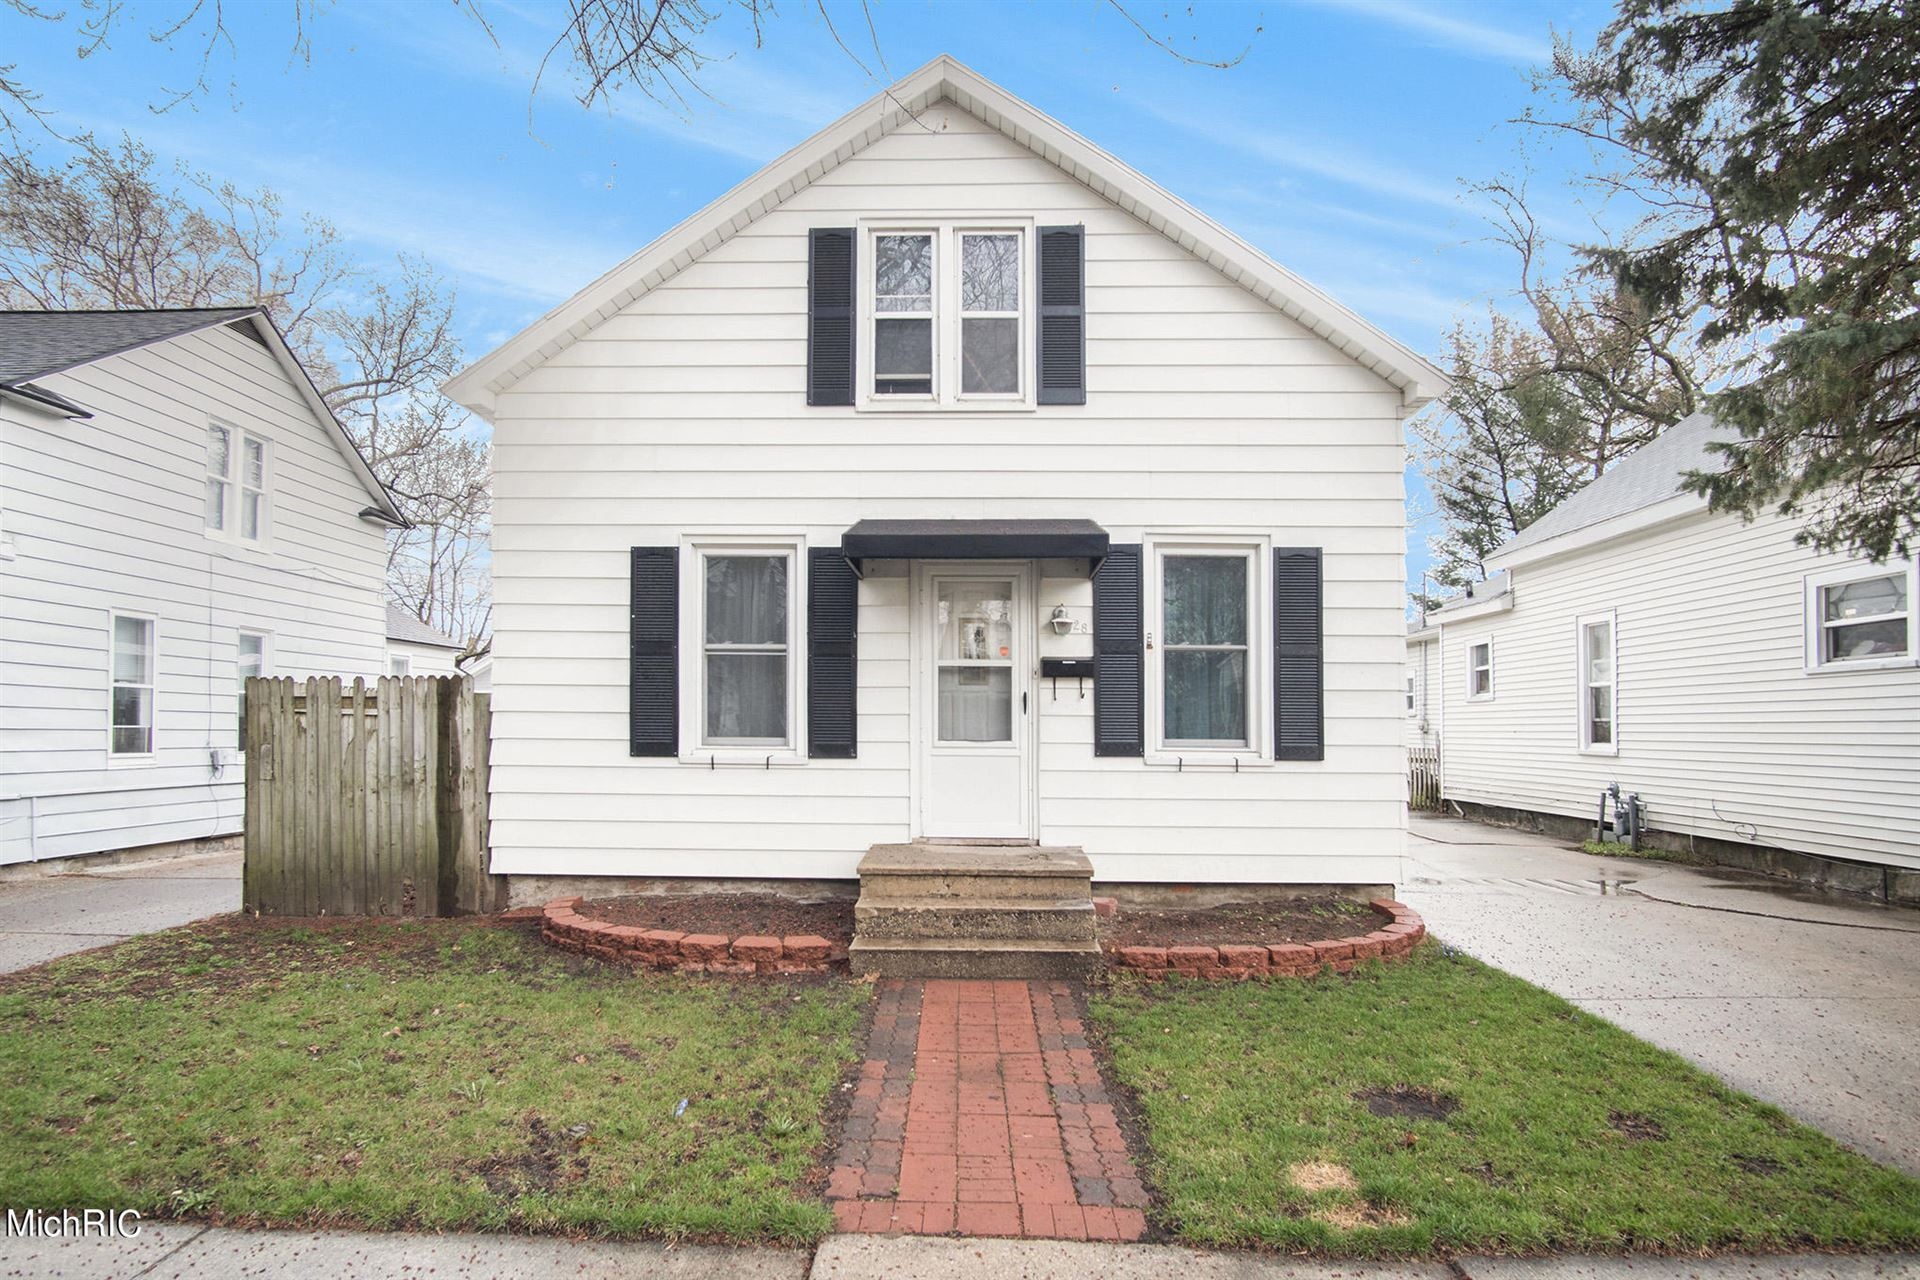 28 E 18th Street, Holland, MI 49423 - MLS#: 21011319